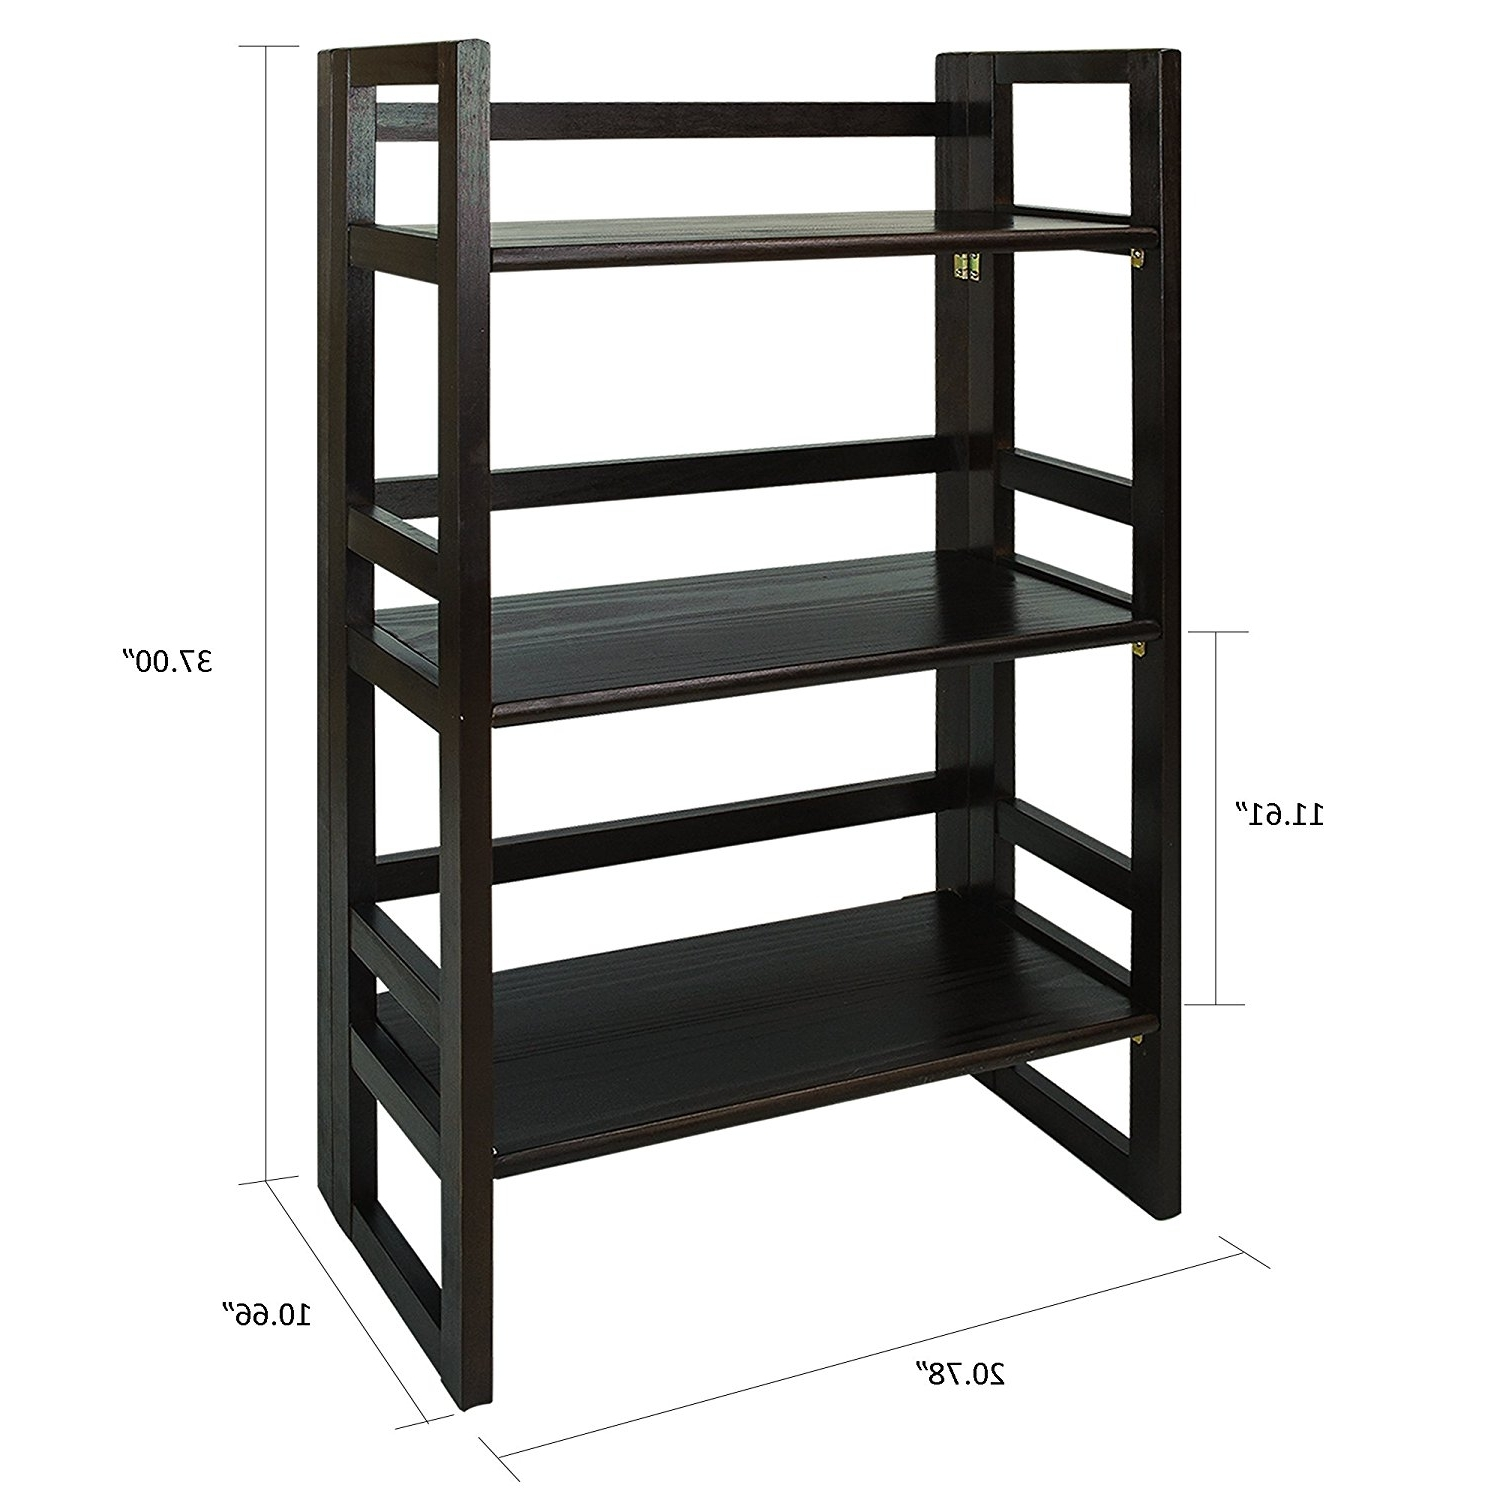 Foldable Bookcases For Most Recent Top 13 Folding Bookcases And Bookshelves Of 2017 For Your Home (View 6 of 15)